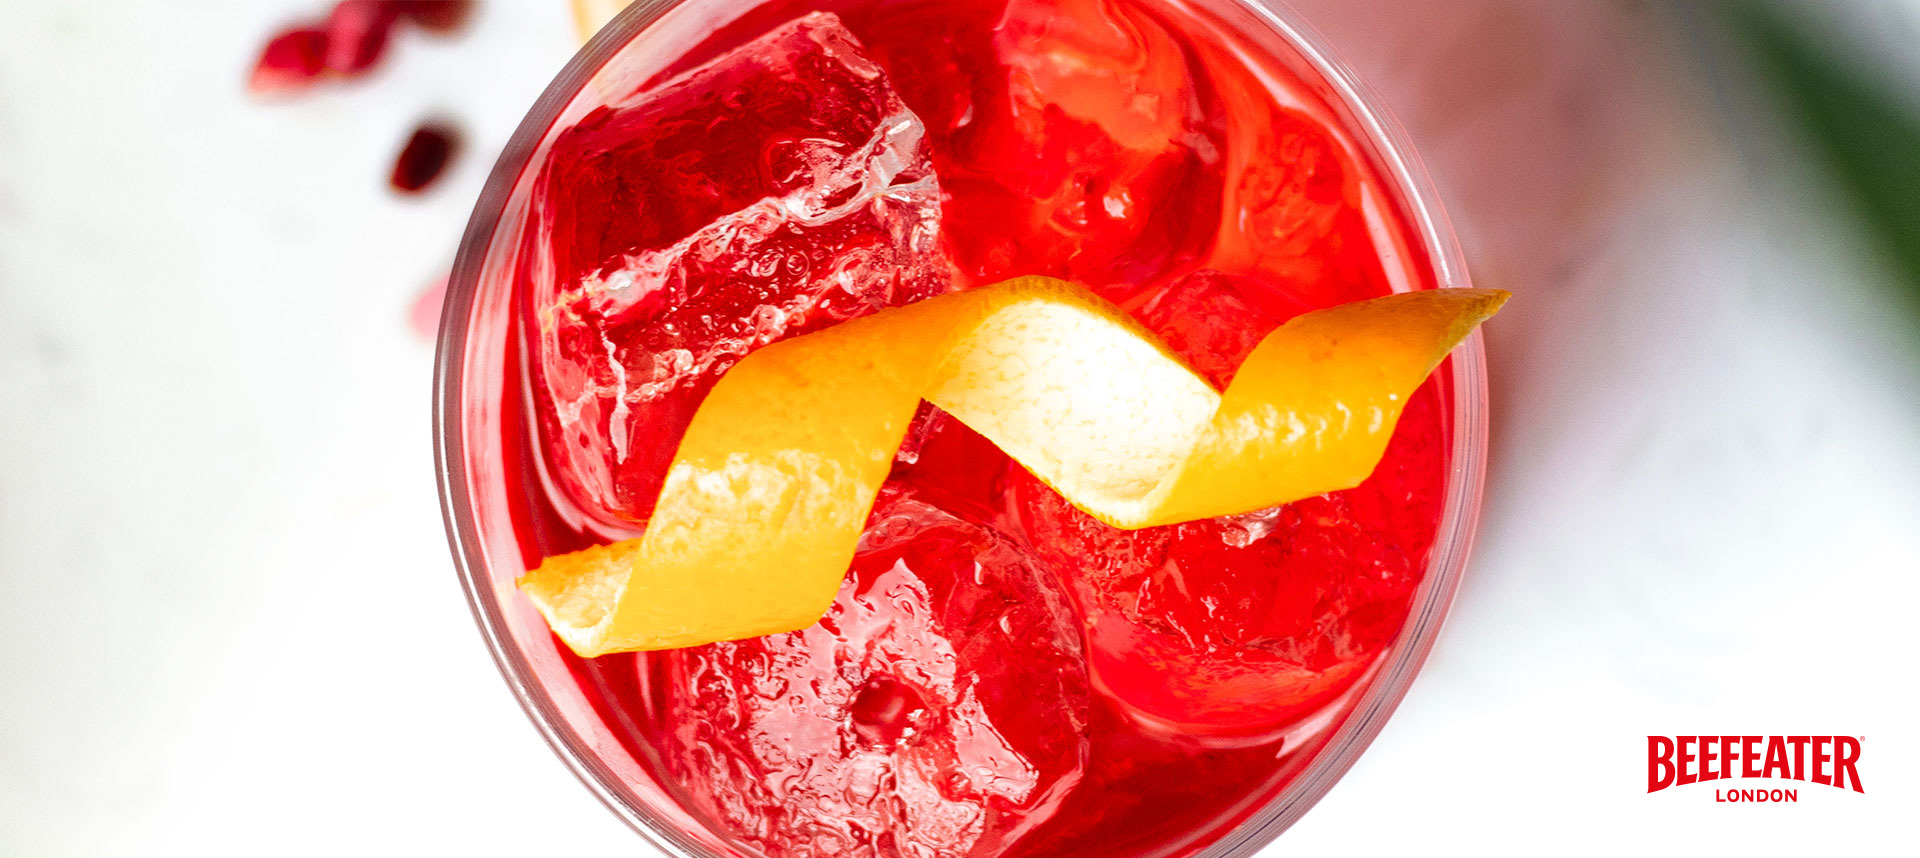 Perfect Beefeater Negroni